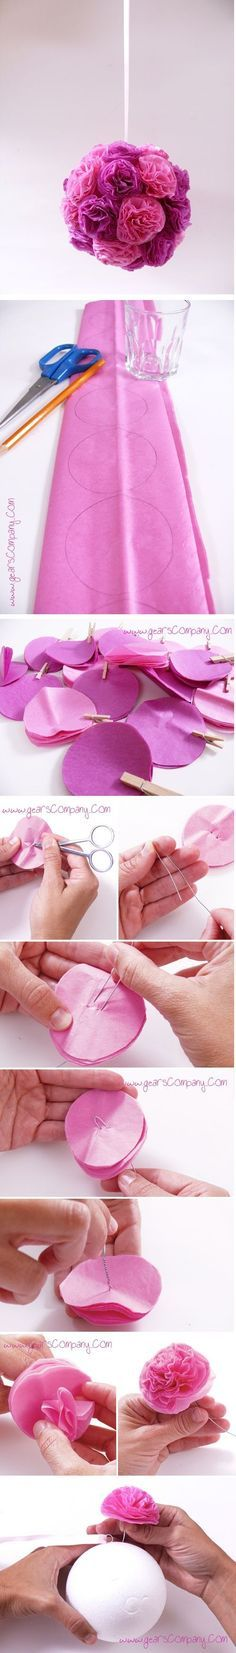 10 Amazing Ideas For Diy Home Decoration 10 Diy Crafts Projects & Home Design